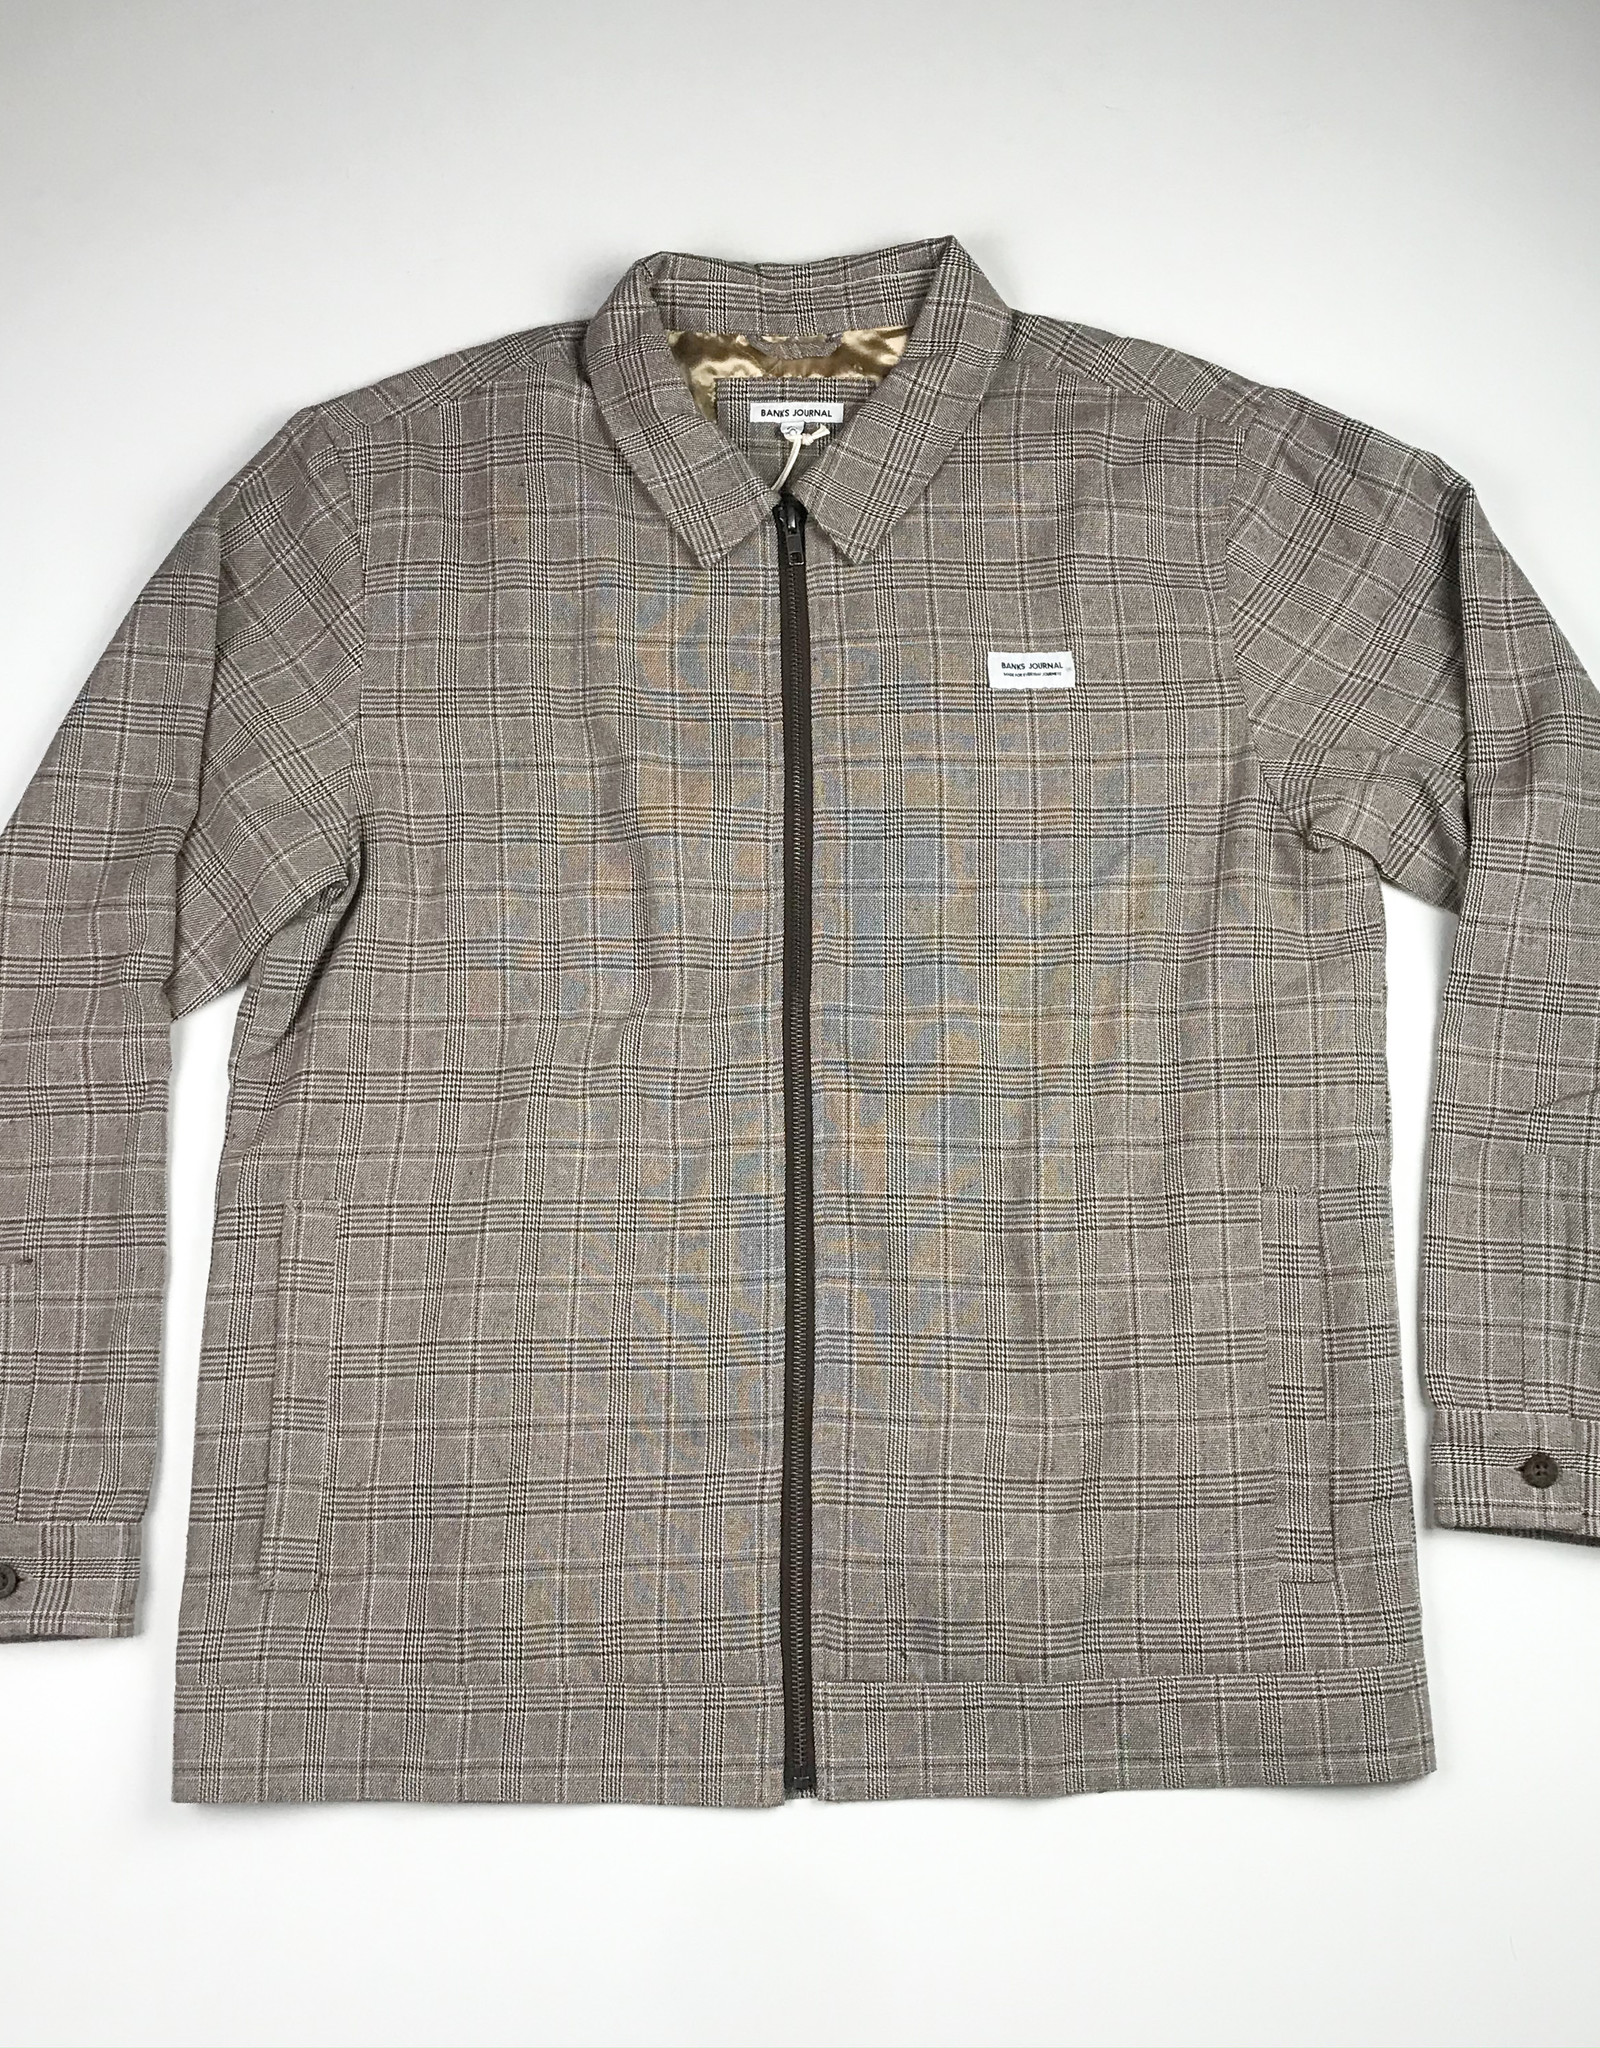 BANKS JOURNAL BANKS MOSELY GINGHAM JACKET - BURNT KHAKI